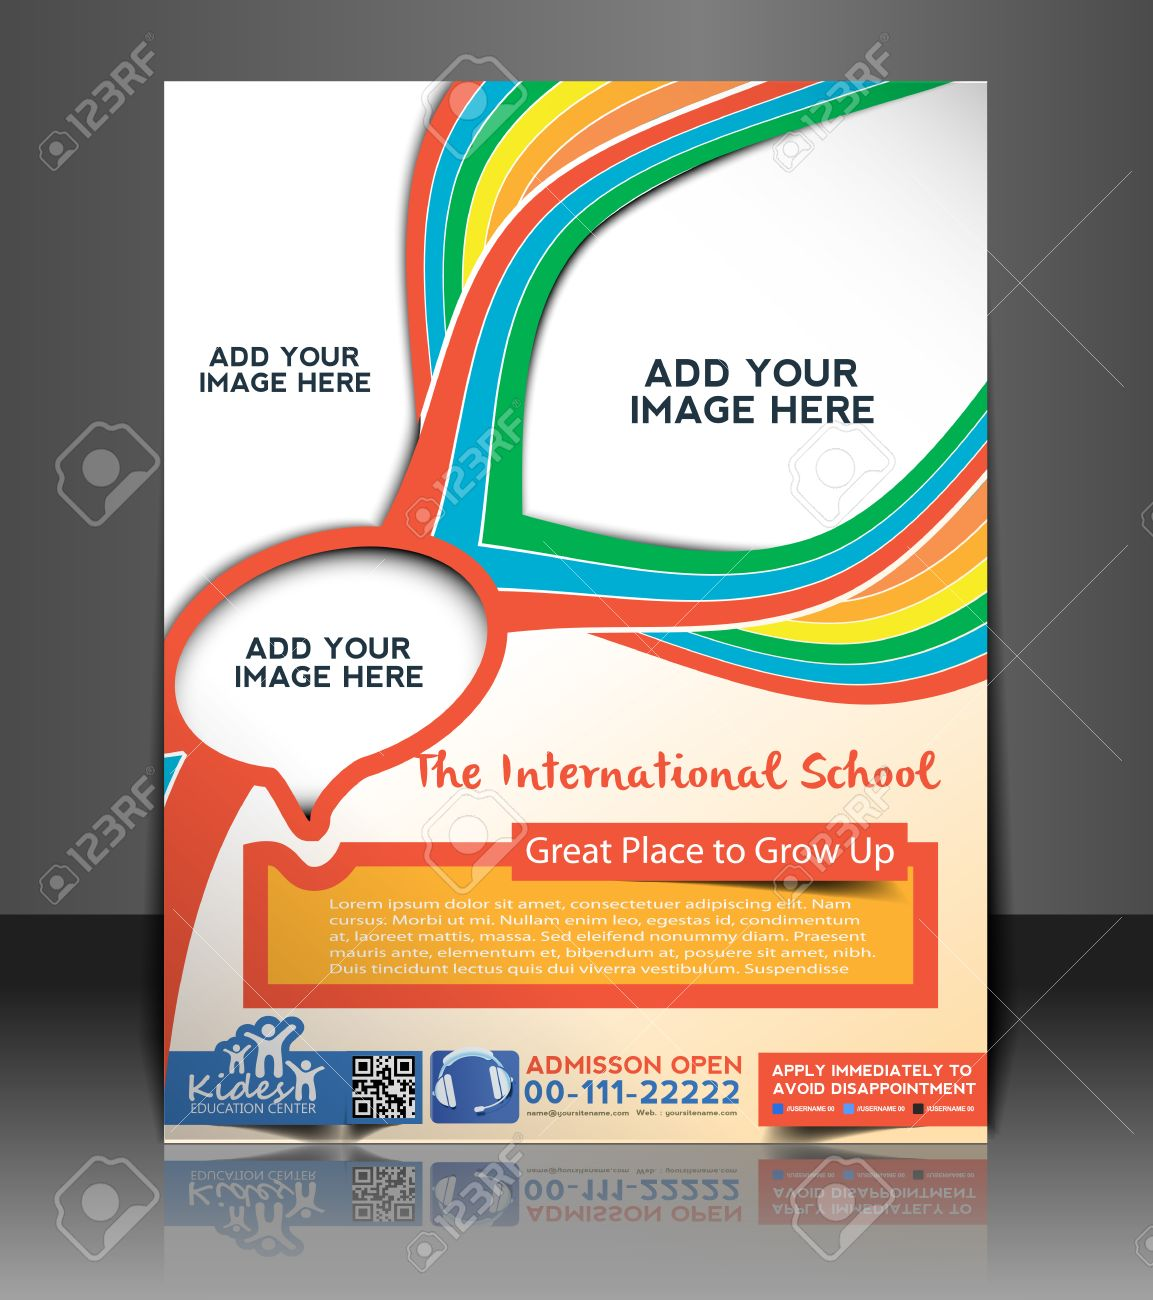 flyer template school images stock pictures royalty flyer flyer template school kids school flyer poster template design